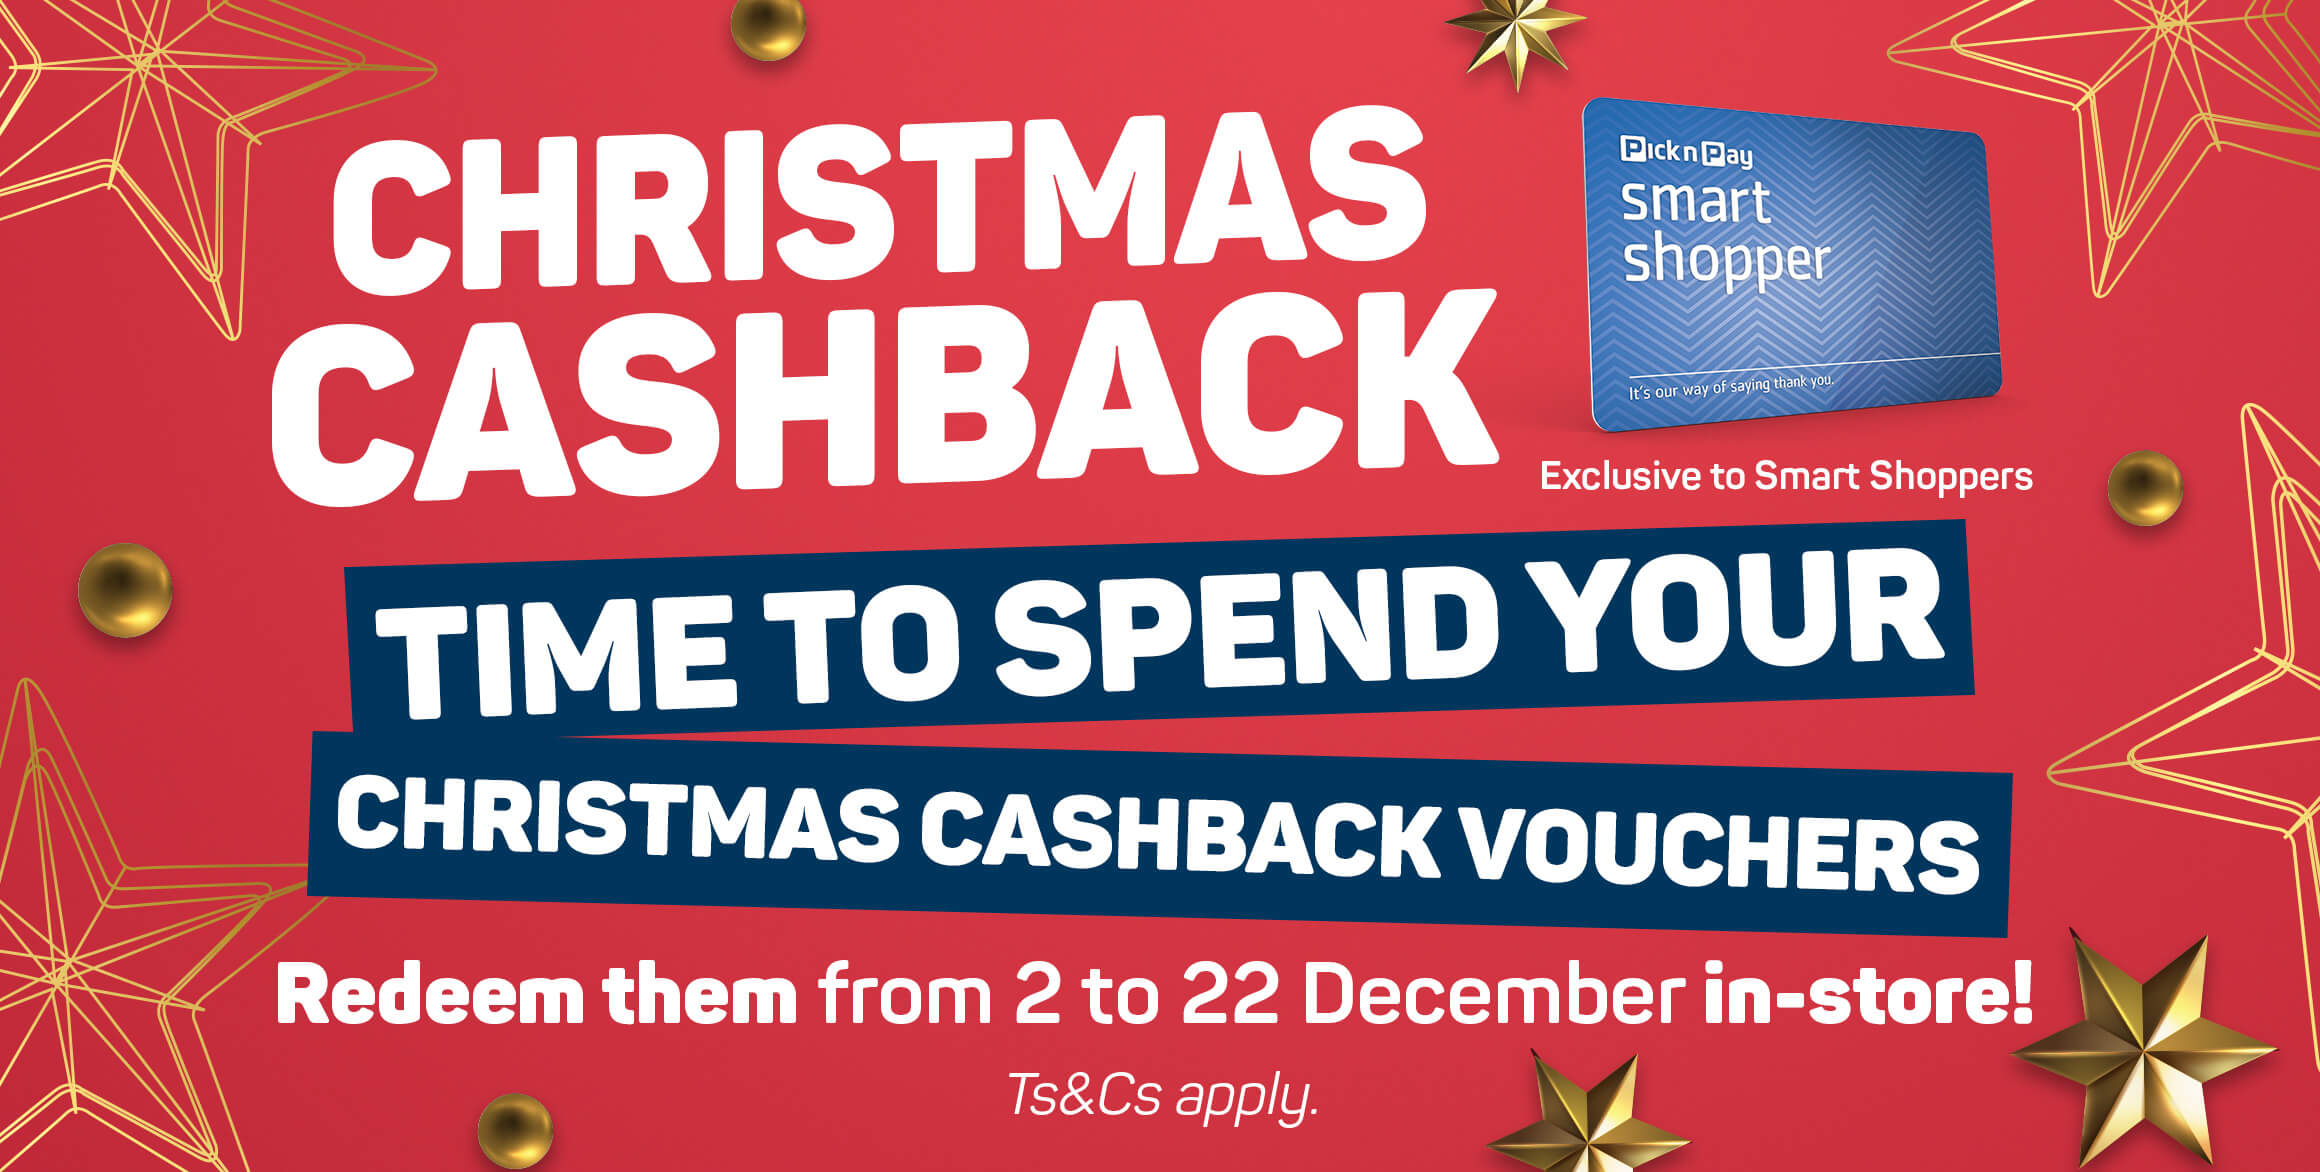 Christmas cashback. Time to spend your christmas cashback vouchers. Redeem them from 2 to 22 Decmber in-store